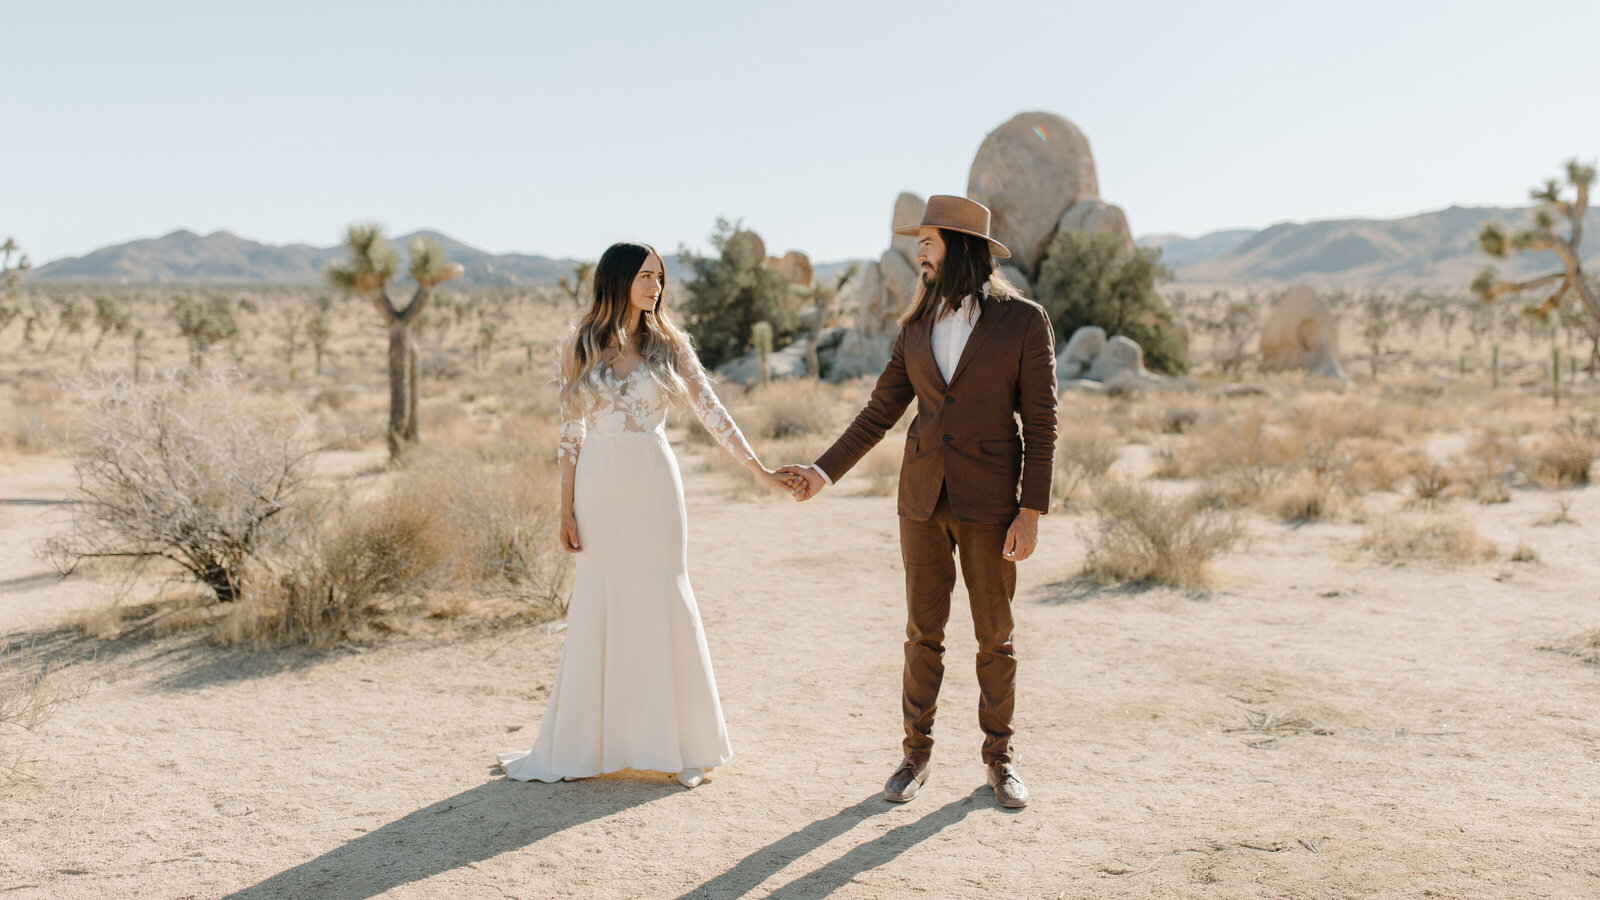 Kristy & Mitchell - Le Haute Desert Aerie Elopement - Tess Laureen Photography @tesslaureen - 49 copy